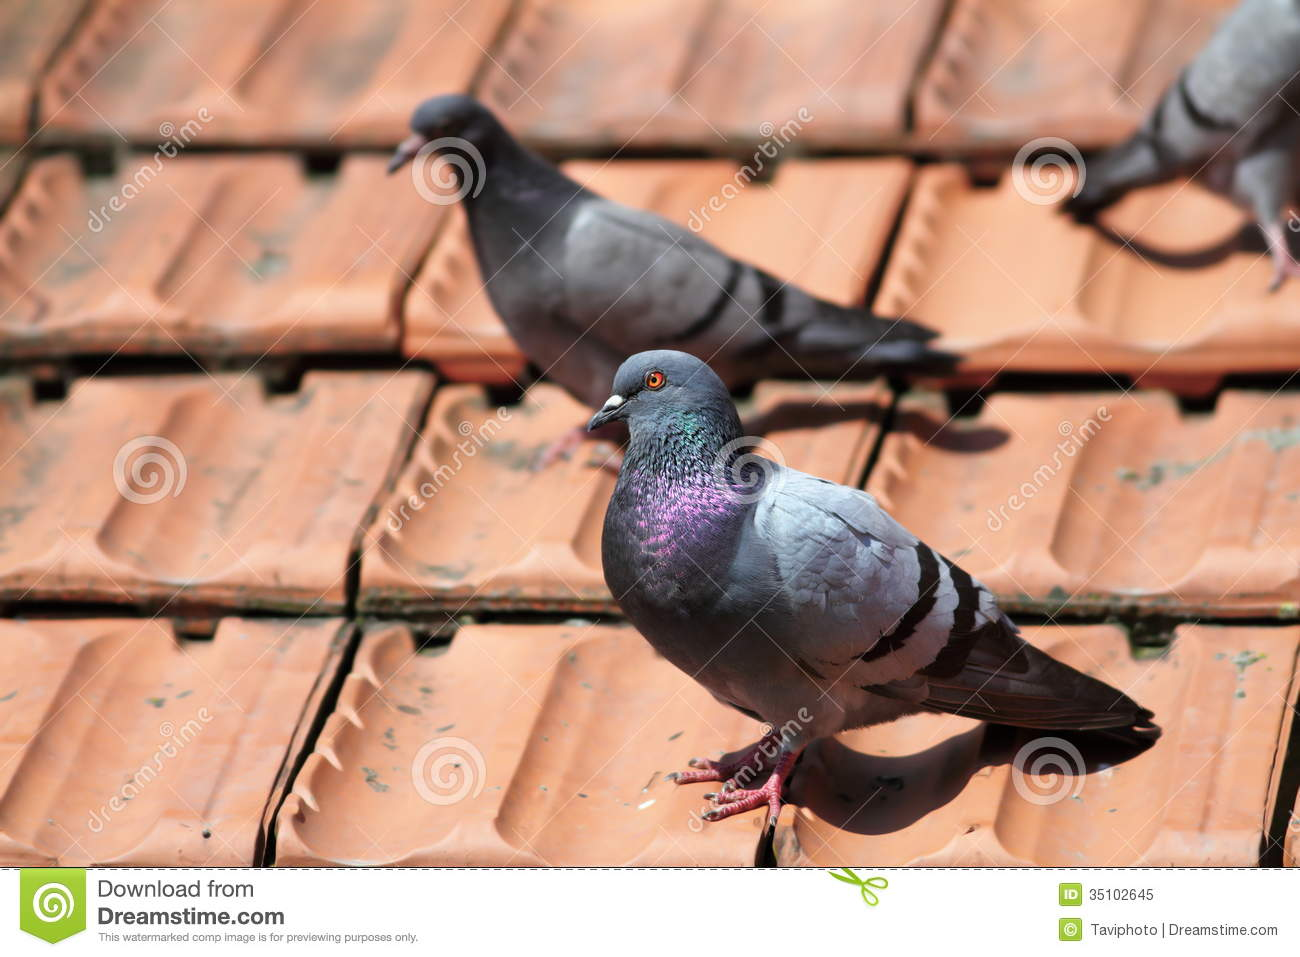 Male Pigeon On The Roof Tiles Royalty Free Stock Photo